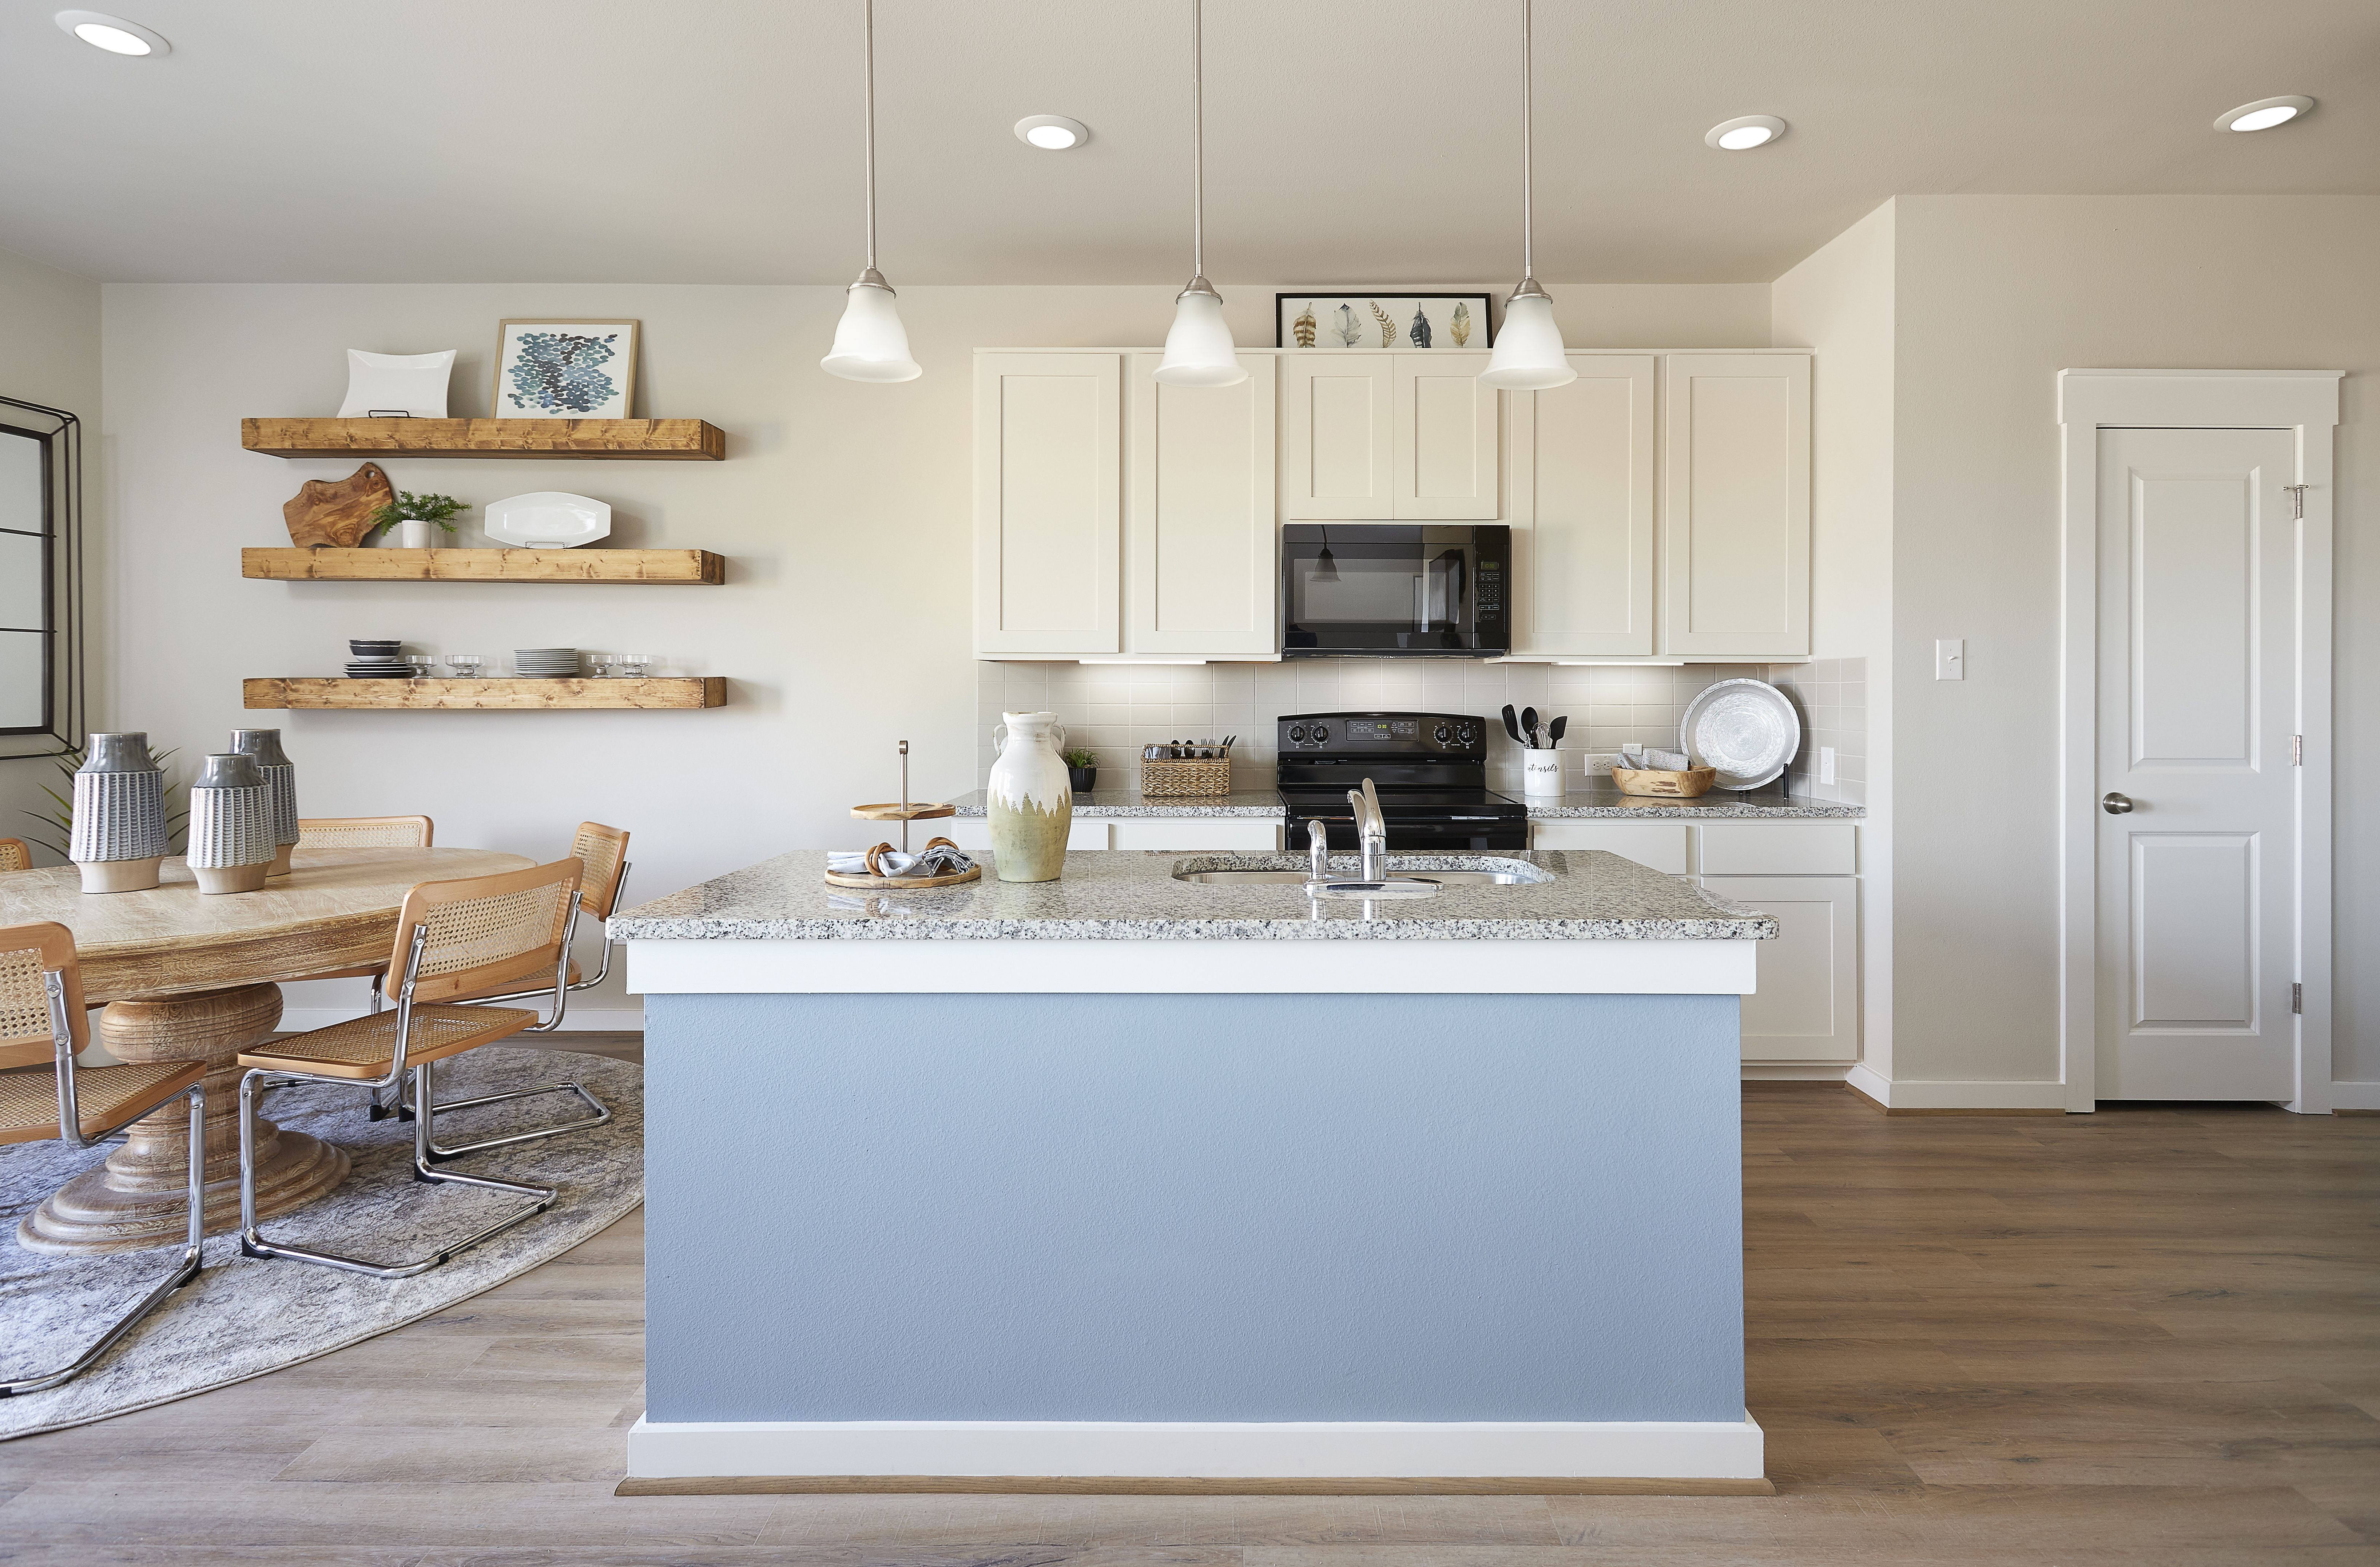 Gray Point Homes Harvest Meadows Acadia E Austin Texas Https Www Graypointhomes Com Gallery Floor P In 2020 Home Kitchens Texas Homes For Sale Kitchen Gallery